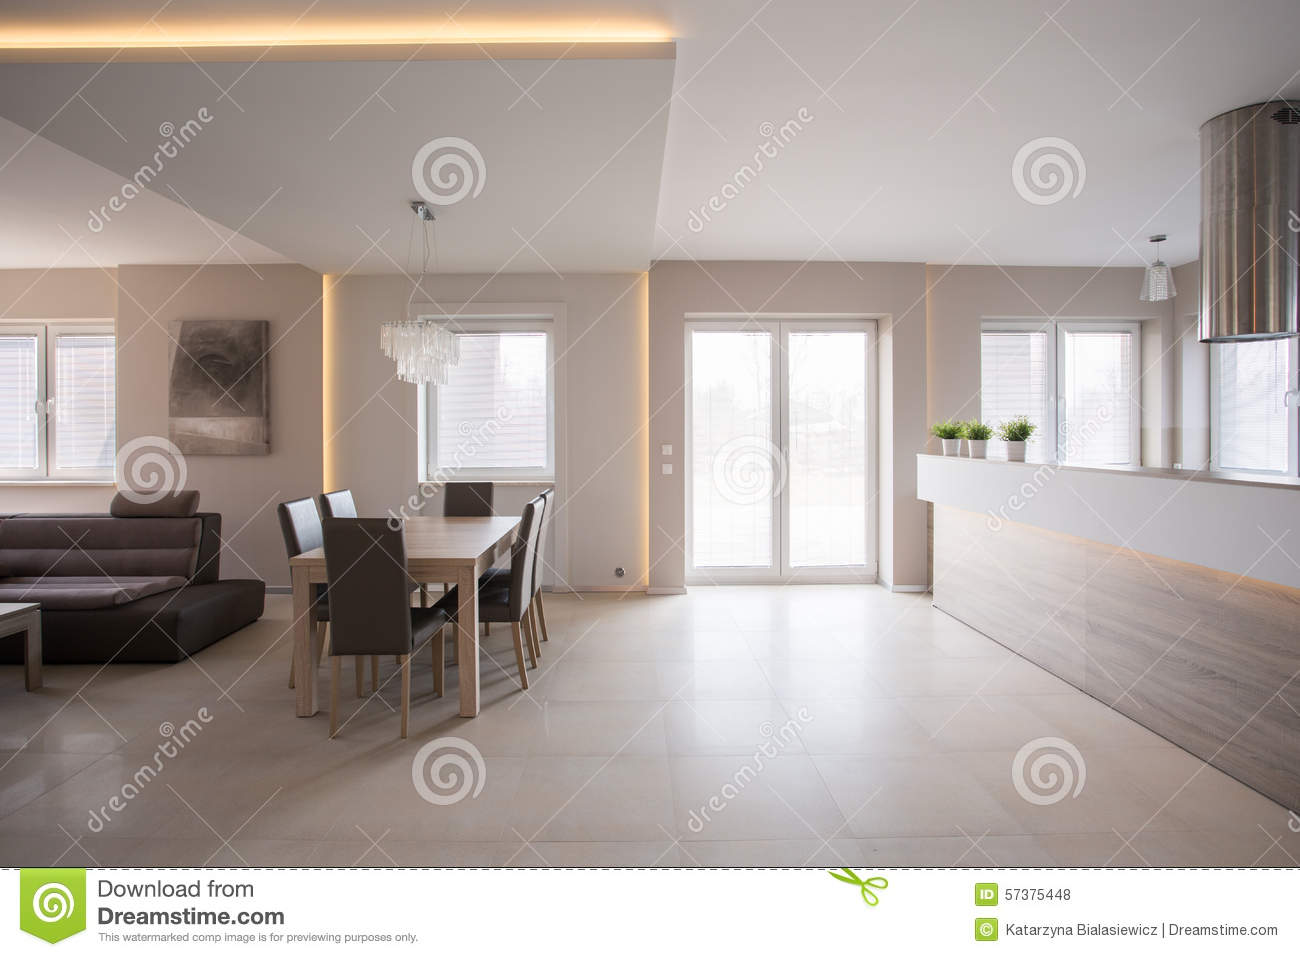 diner l 39 espace dans la maison spacieuse photo stock image 57375448. Black Bedroom Furniture Sets. Home Design Ideas